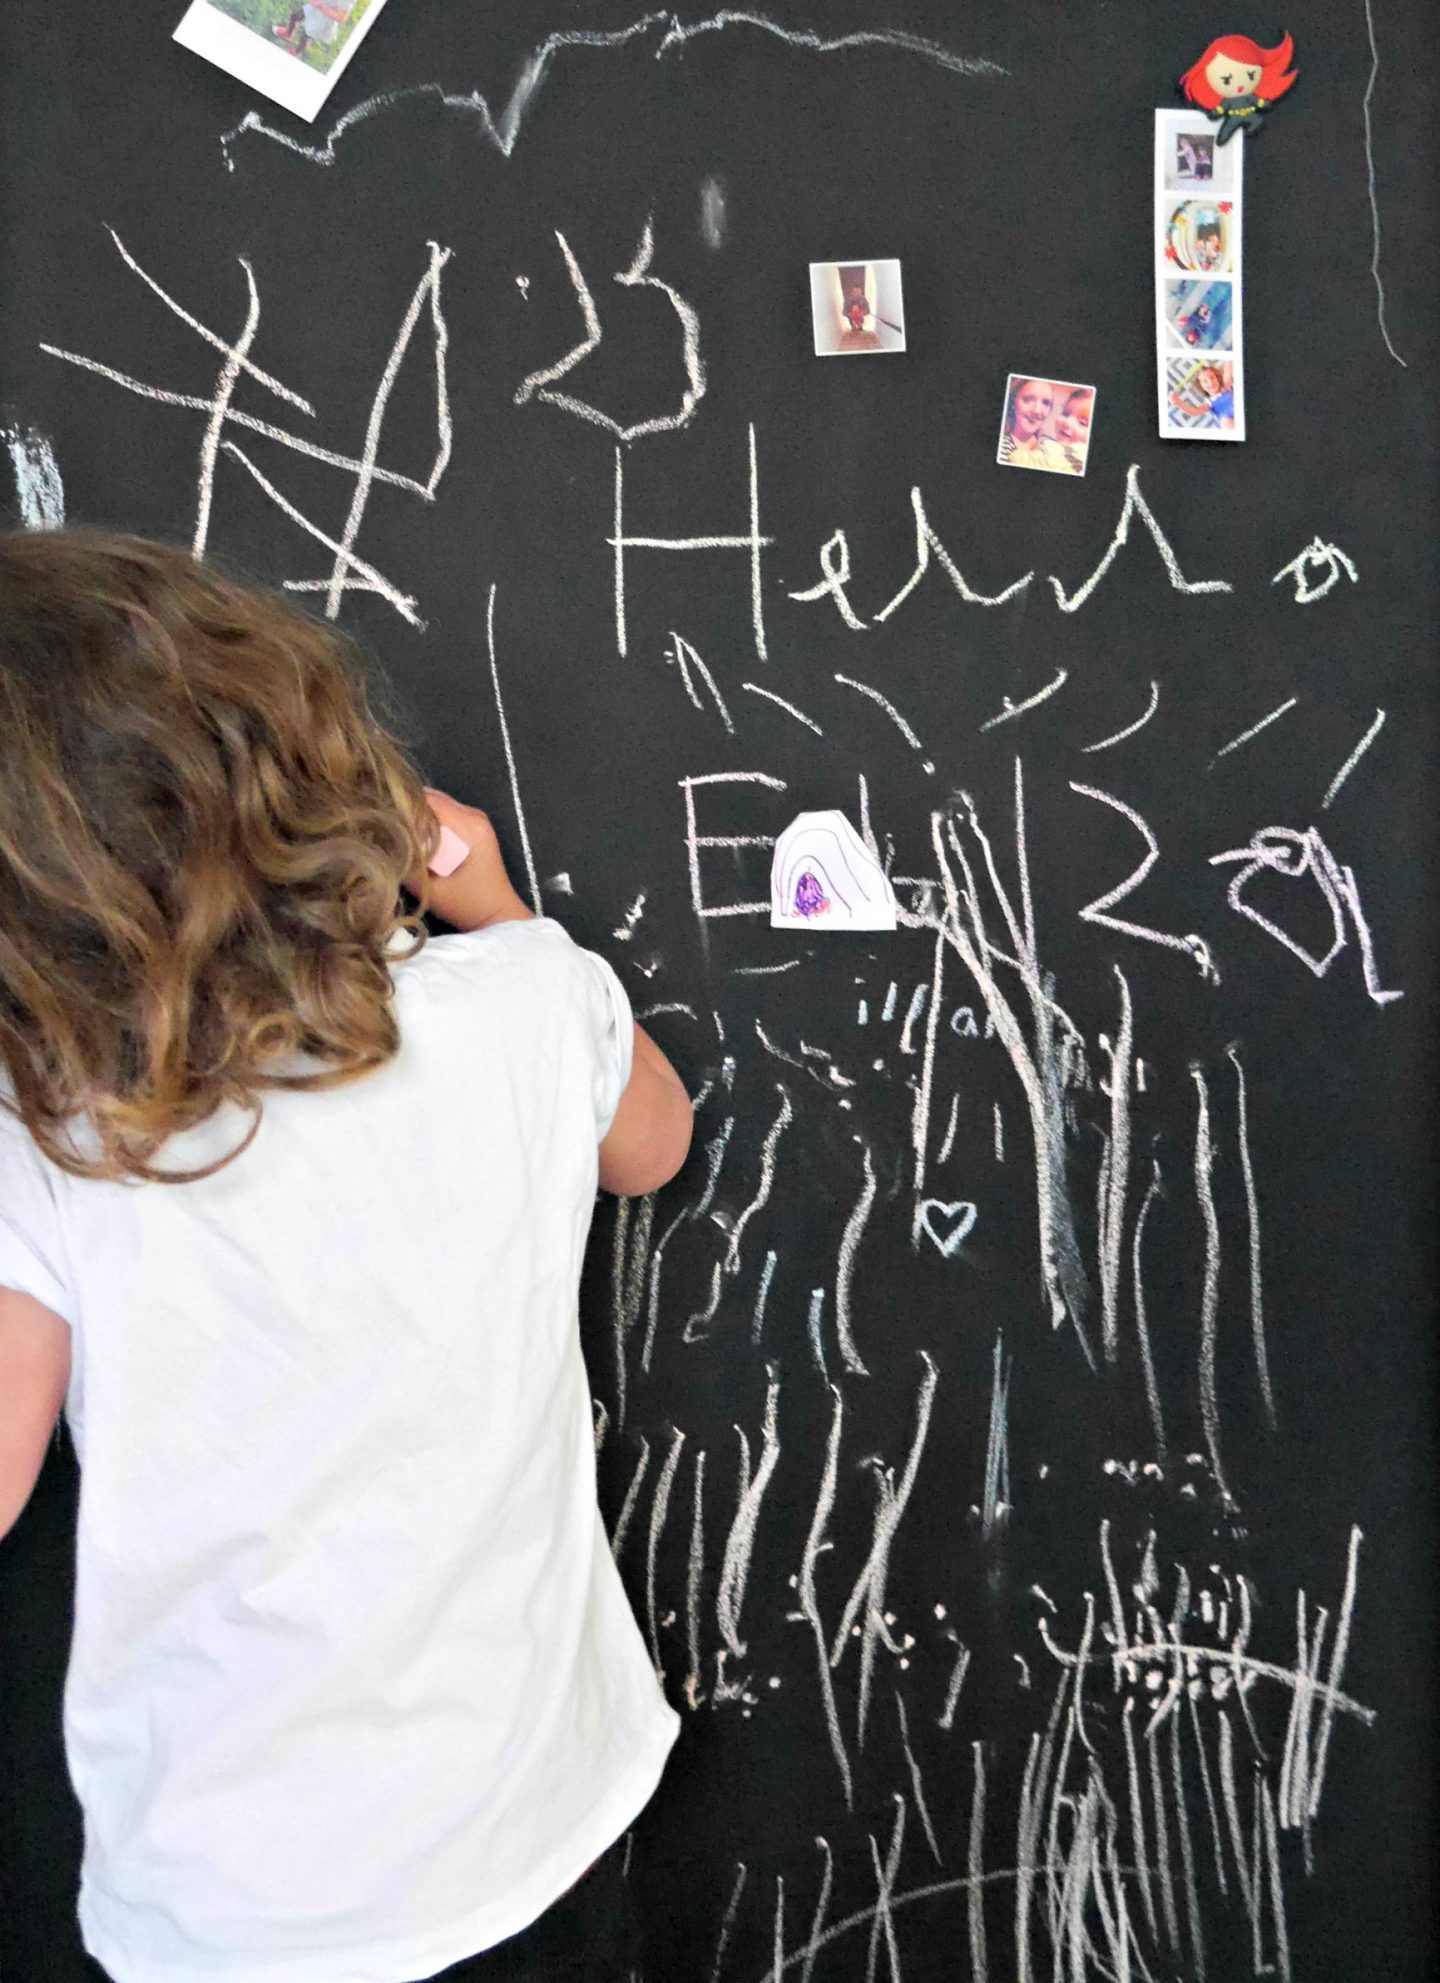 Magnetic chalkboard wall for children's bedrooms